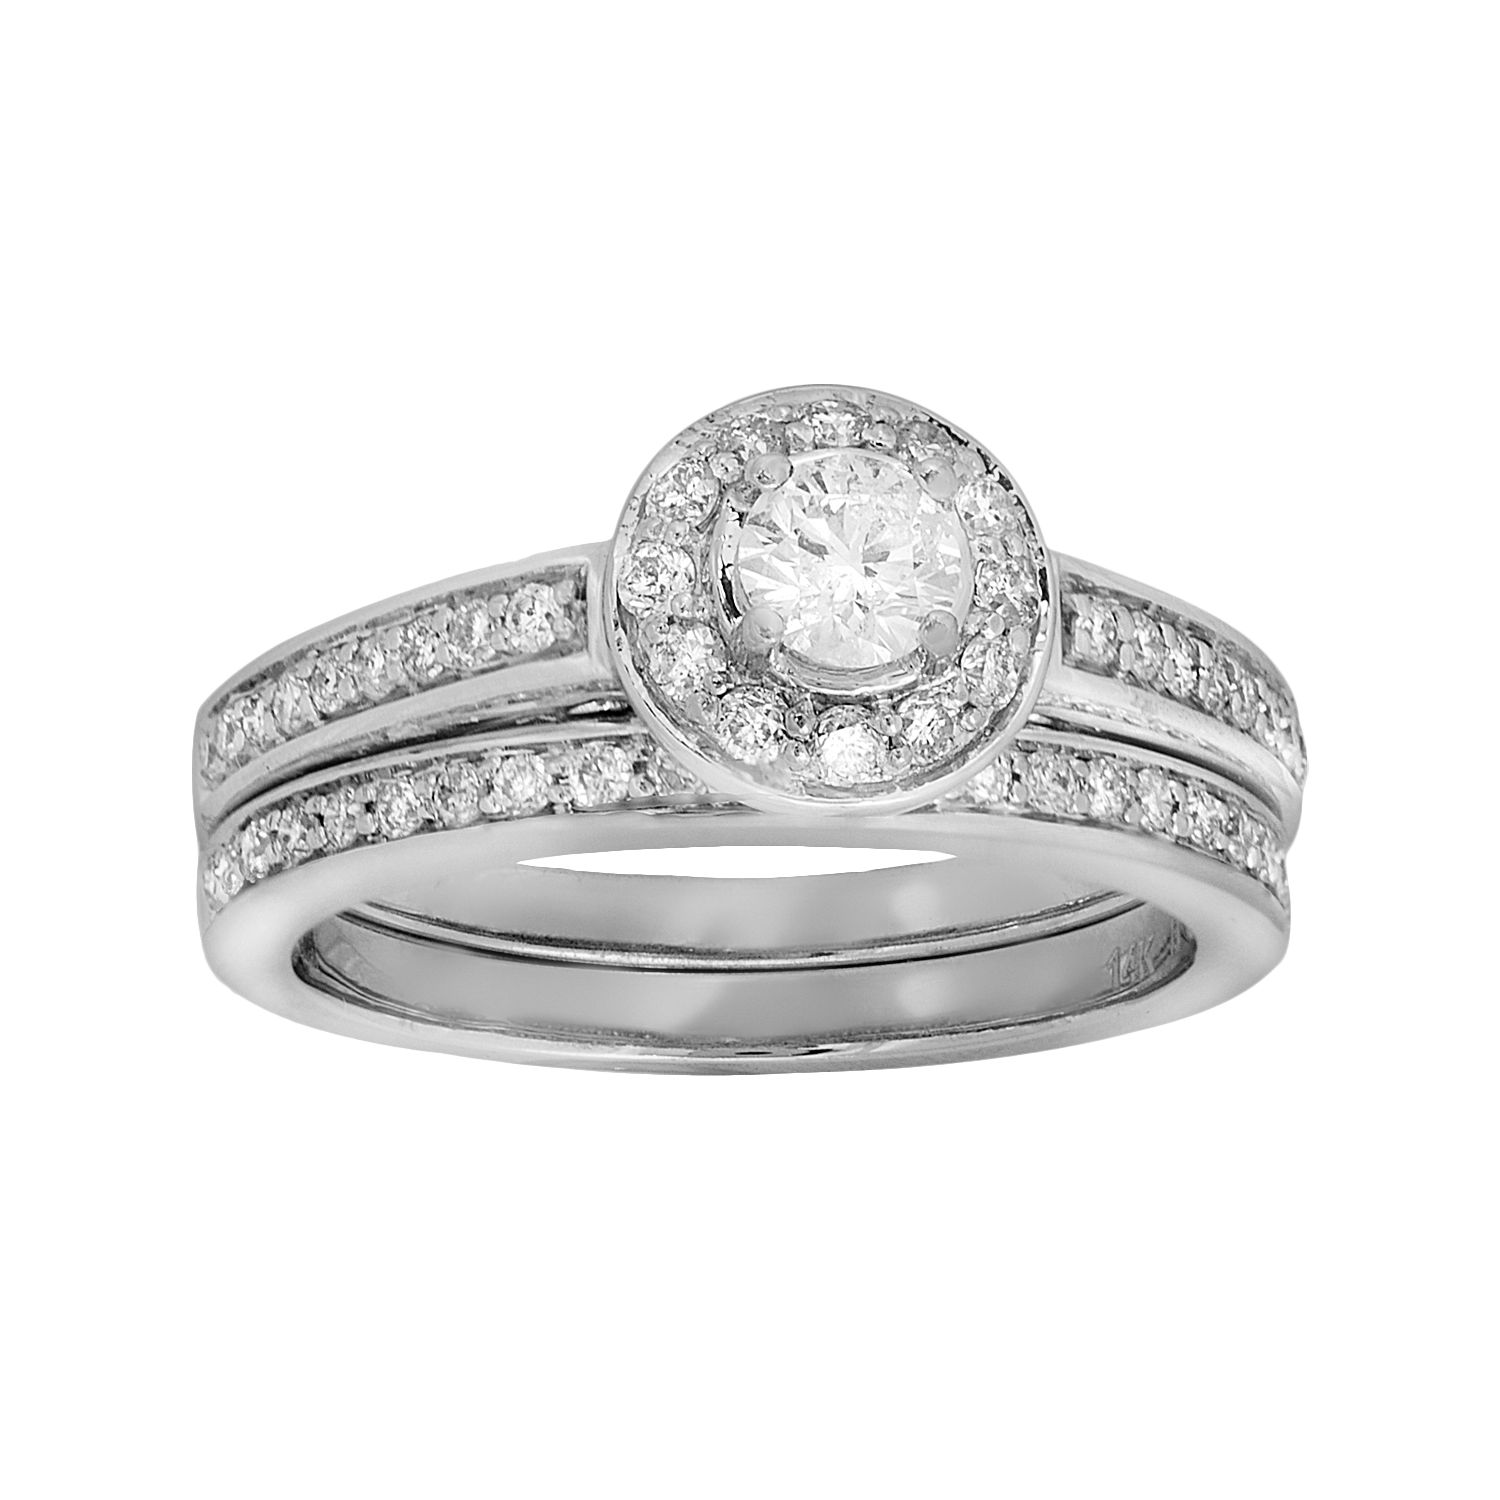 Wedding Rings Sets White Gold 60 Perfect Round Cut IGI Certified